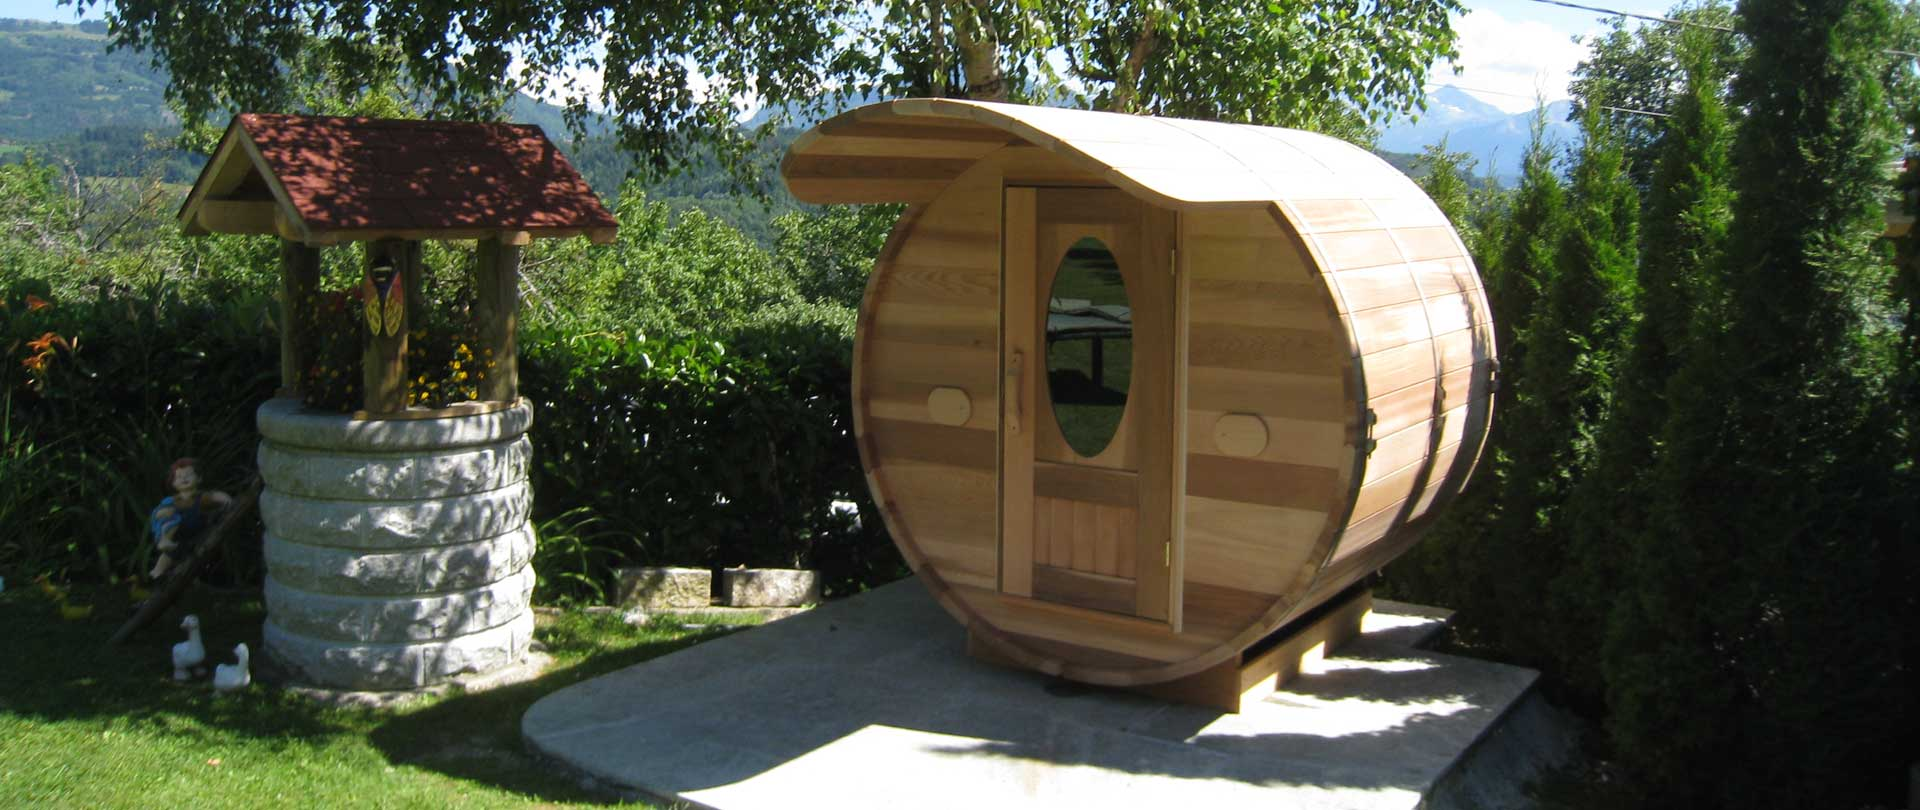 sauna bulle ext rieur en bois de c dre annecy atelier. Black Bedroom Furniture Sets. Home Design Ideas